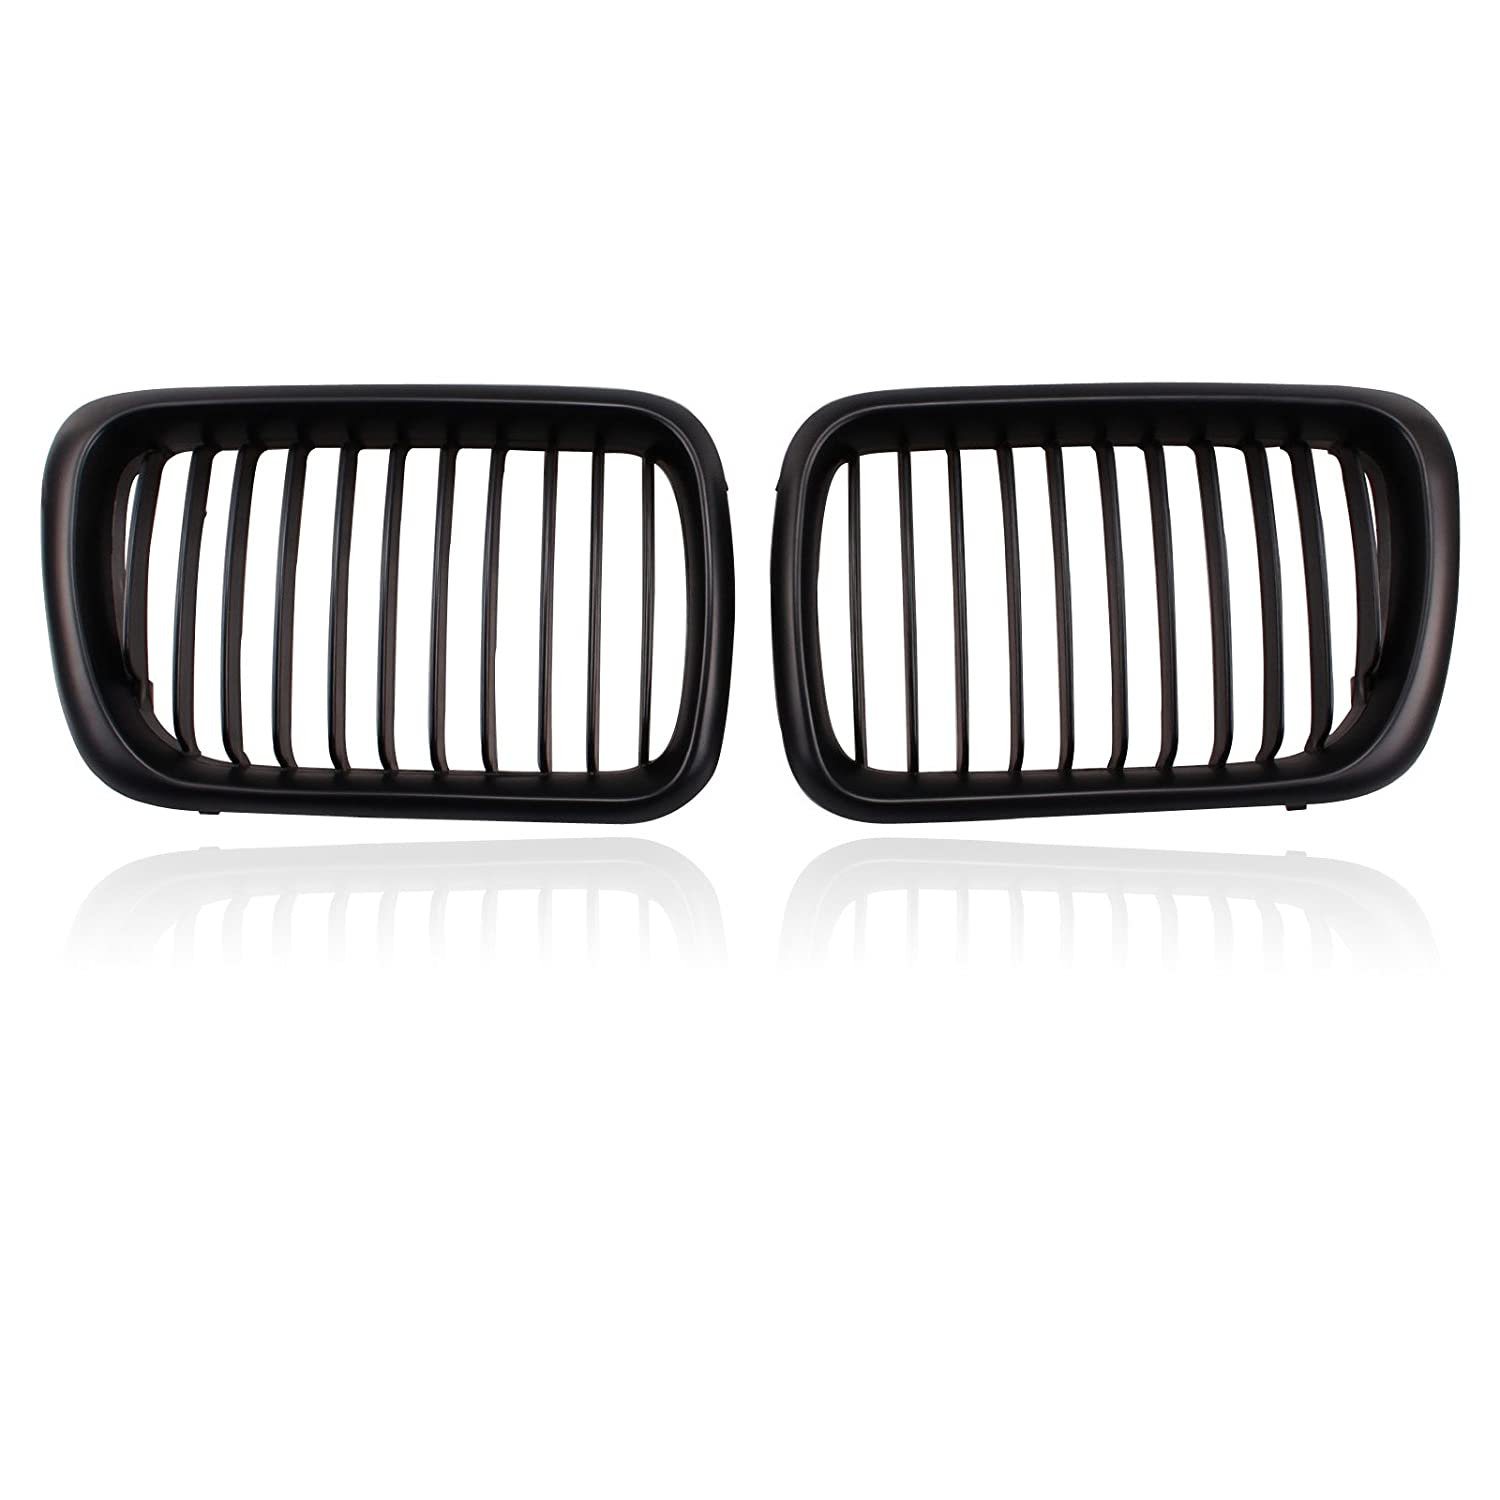 Heart Horse Kidney Front Grilles Grill For BMW E36 3 Series 318 320 323 328 M3 1997-1999 HuihuangAMZus sku486